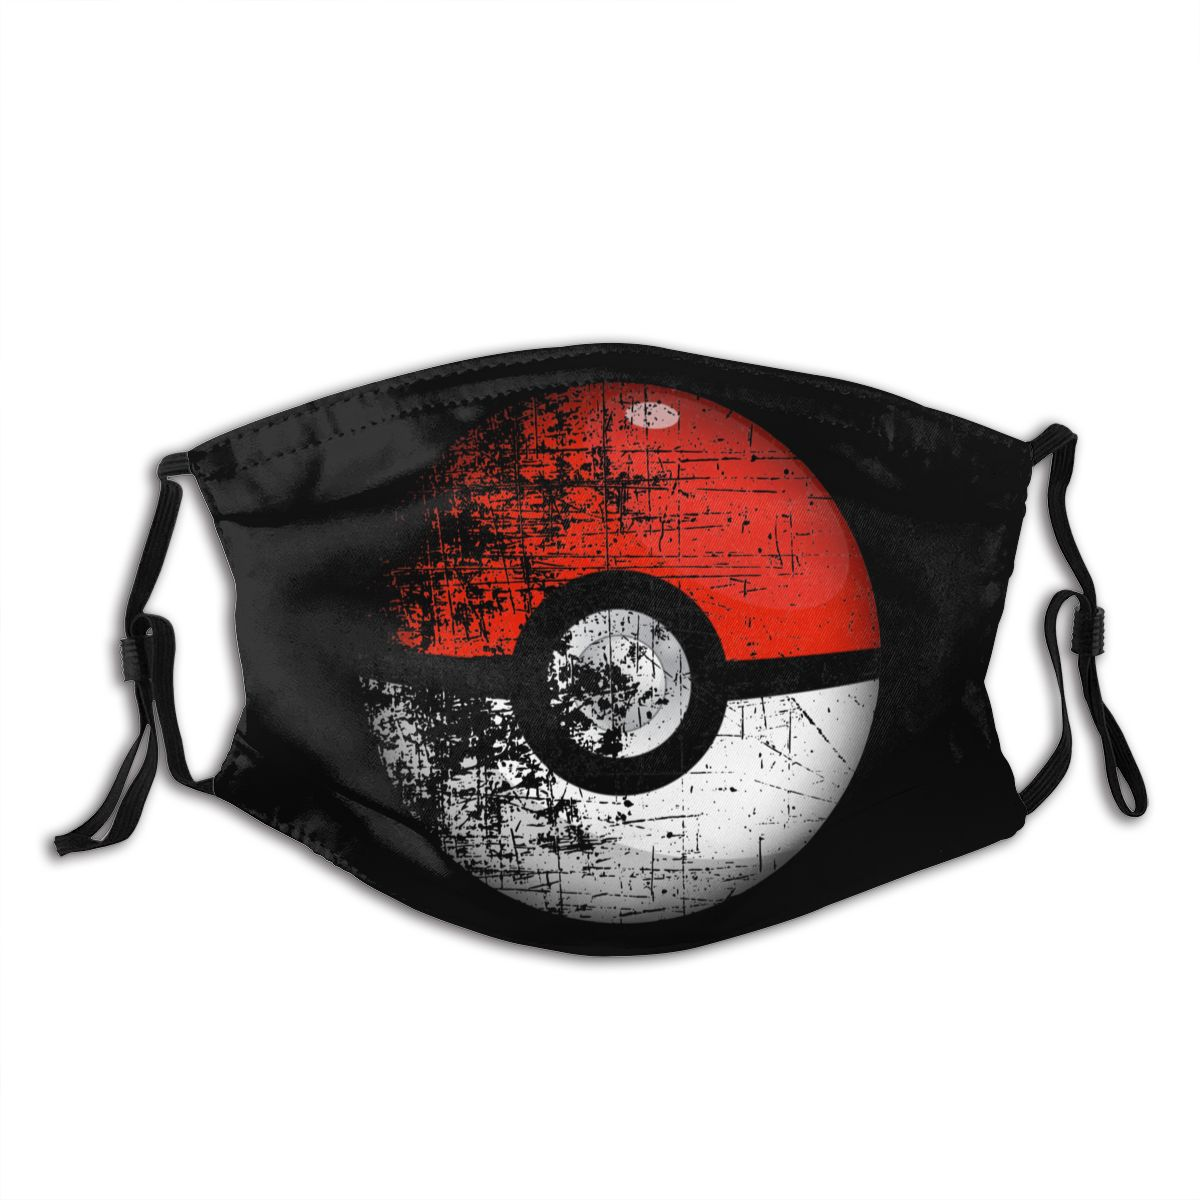 Pokemon Go Team Men Women Non-Disposable Face Mask Anti Haze Dust Protection Cover Respirator Muffle Mask with Filters image